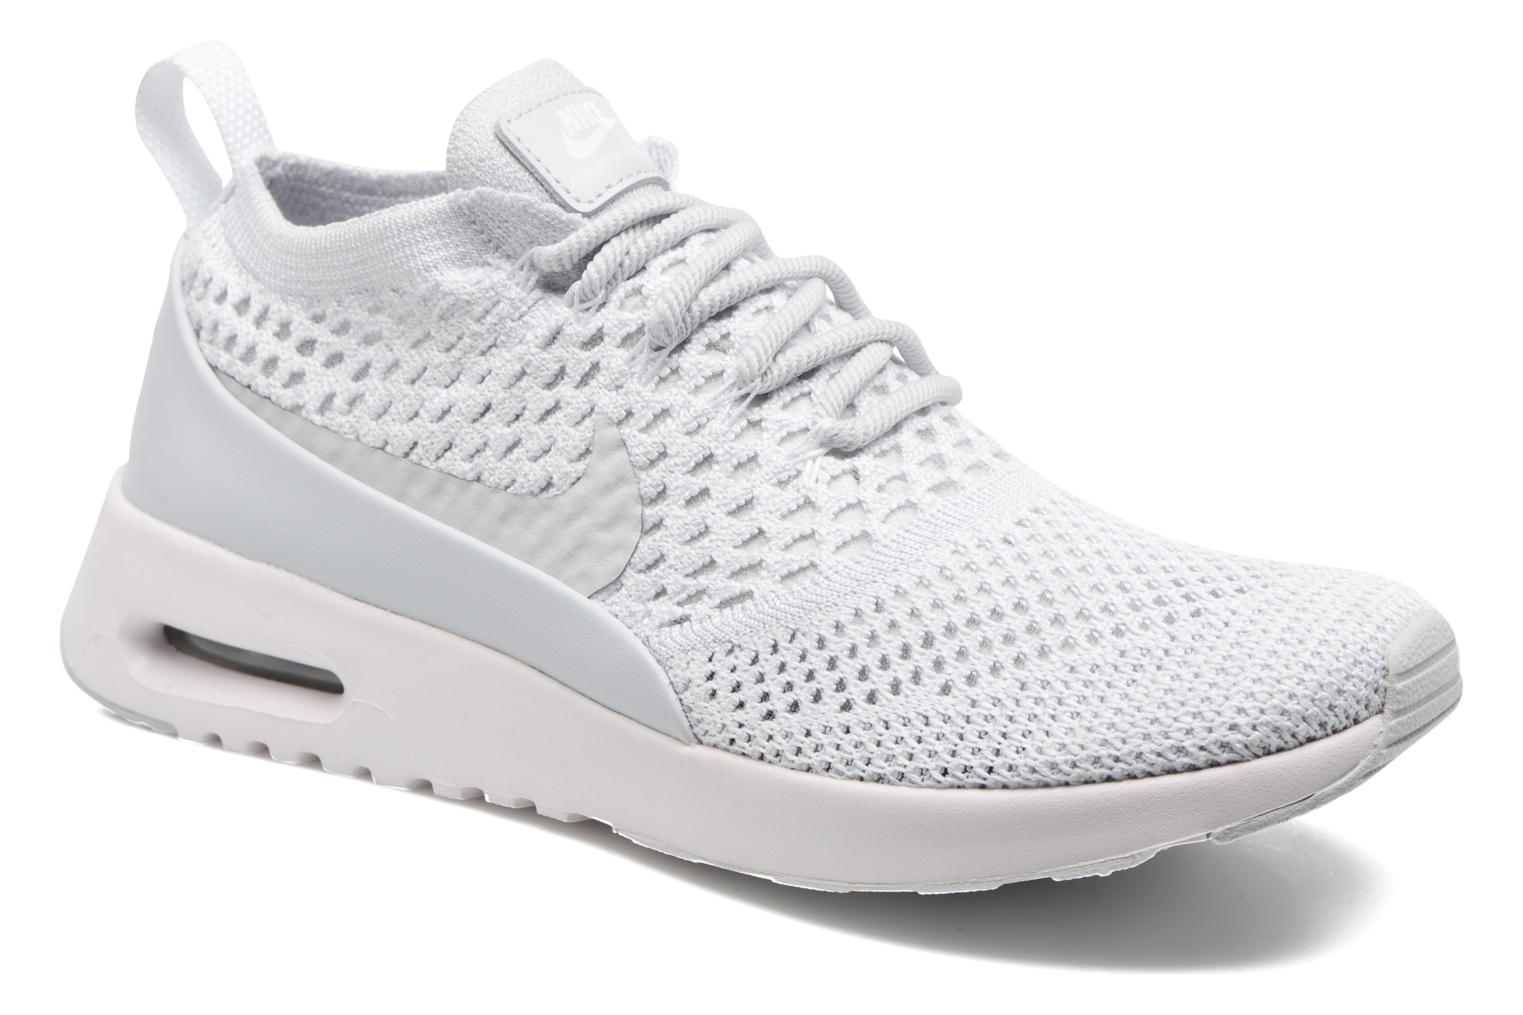 W Nike Air Max Thea Ultra Fk PURE PLATINUM/PURE PLATINUM-WHITE